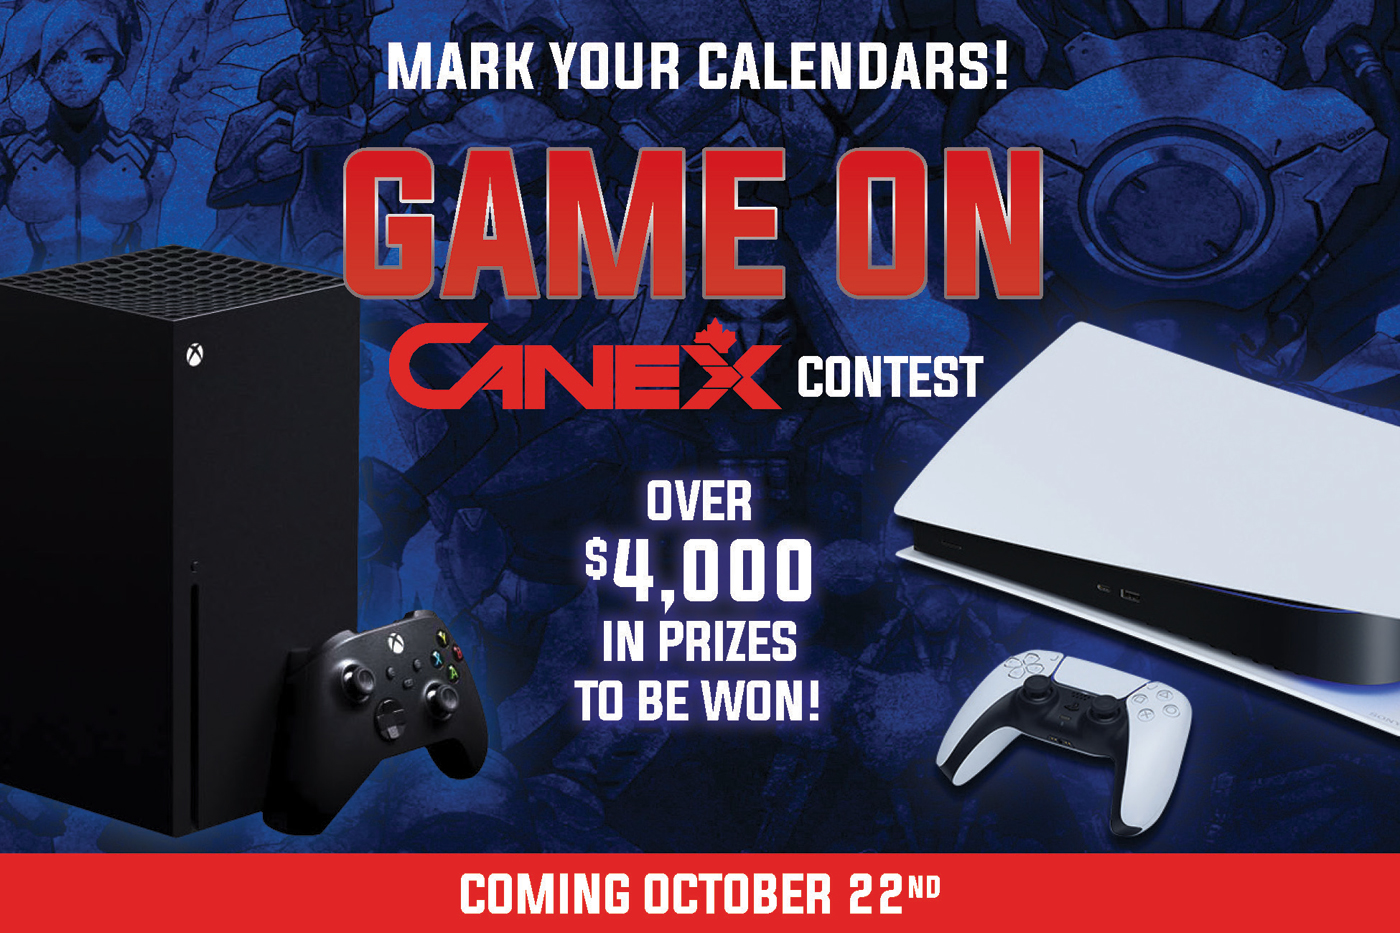 CANEX-Game-On-Contest-1